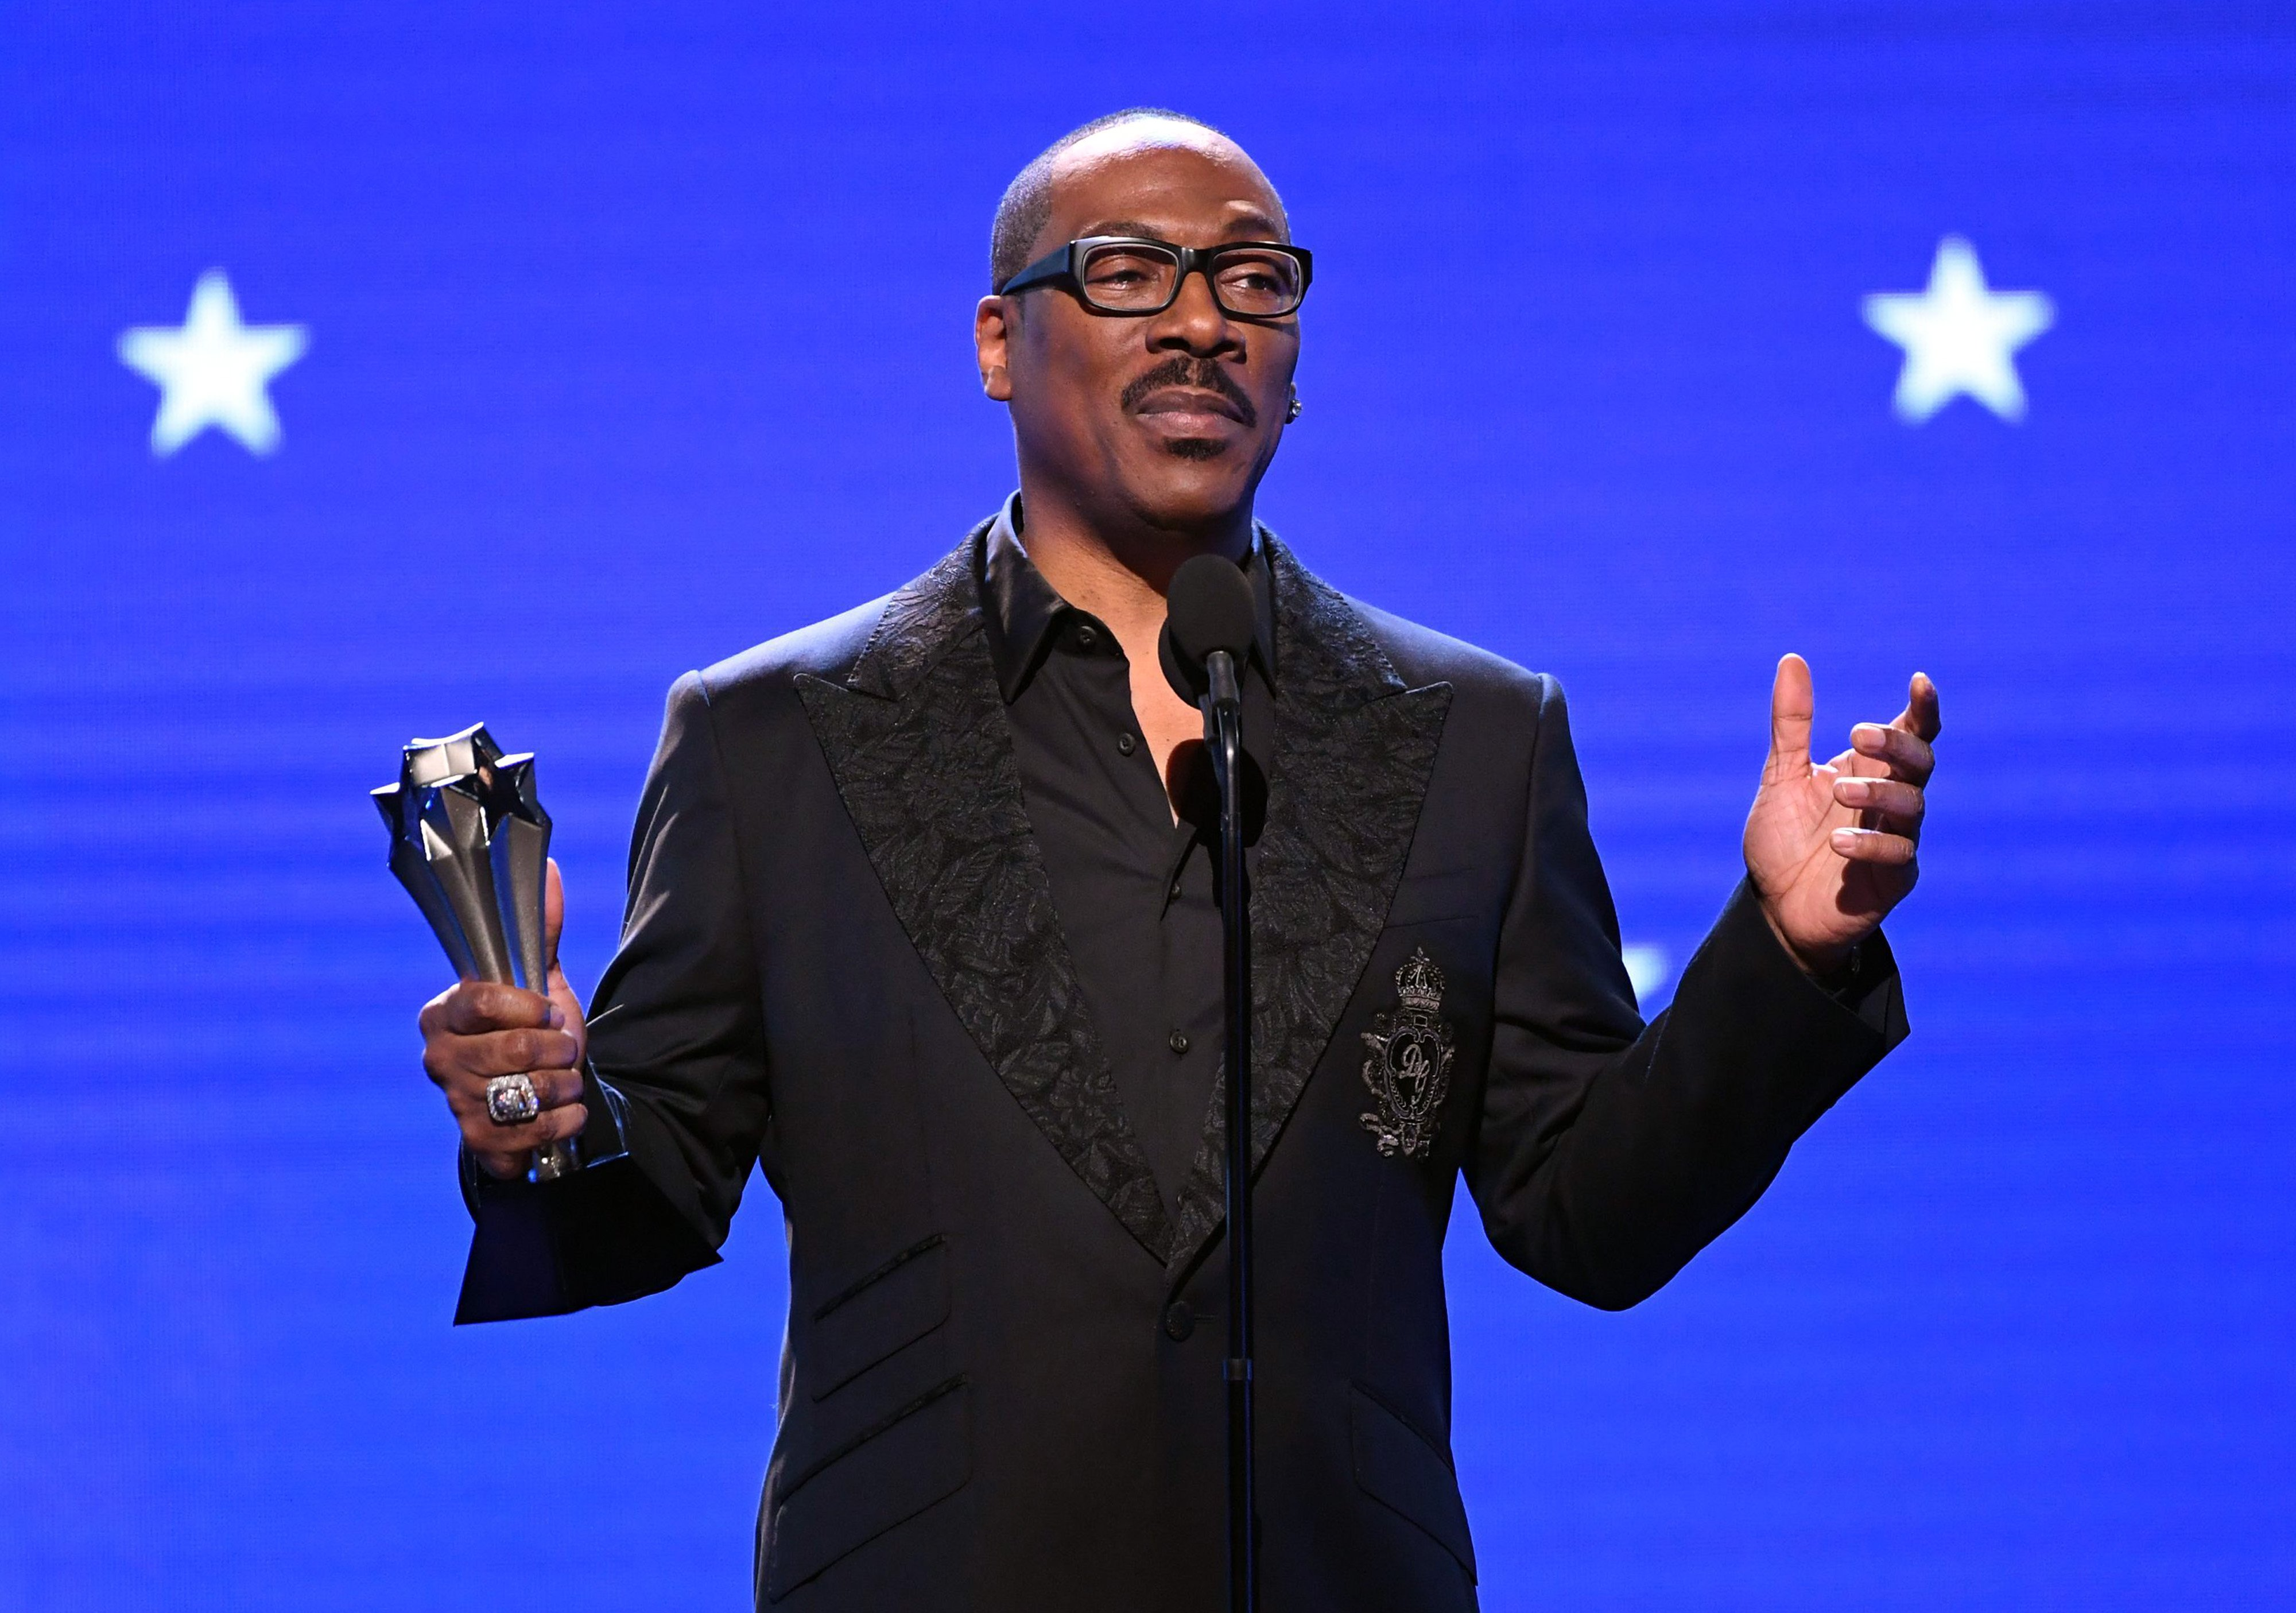 Eddie Murphy accepts the Lifetime Achievement Award onstage during the 25th Annual Critics' Choice Awards at Barker Hangar on January 12, 2020, in Santa Monica, California. | Photo: Getty Images.